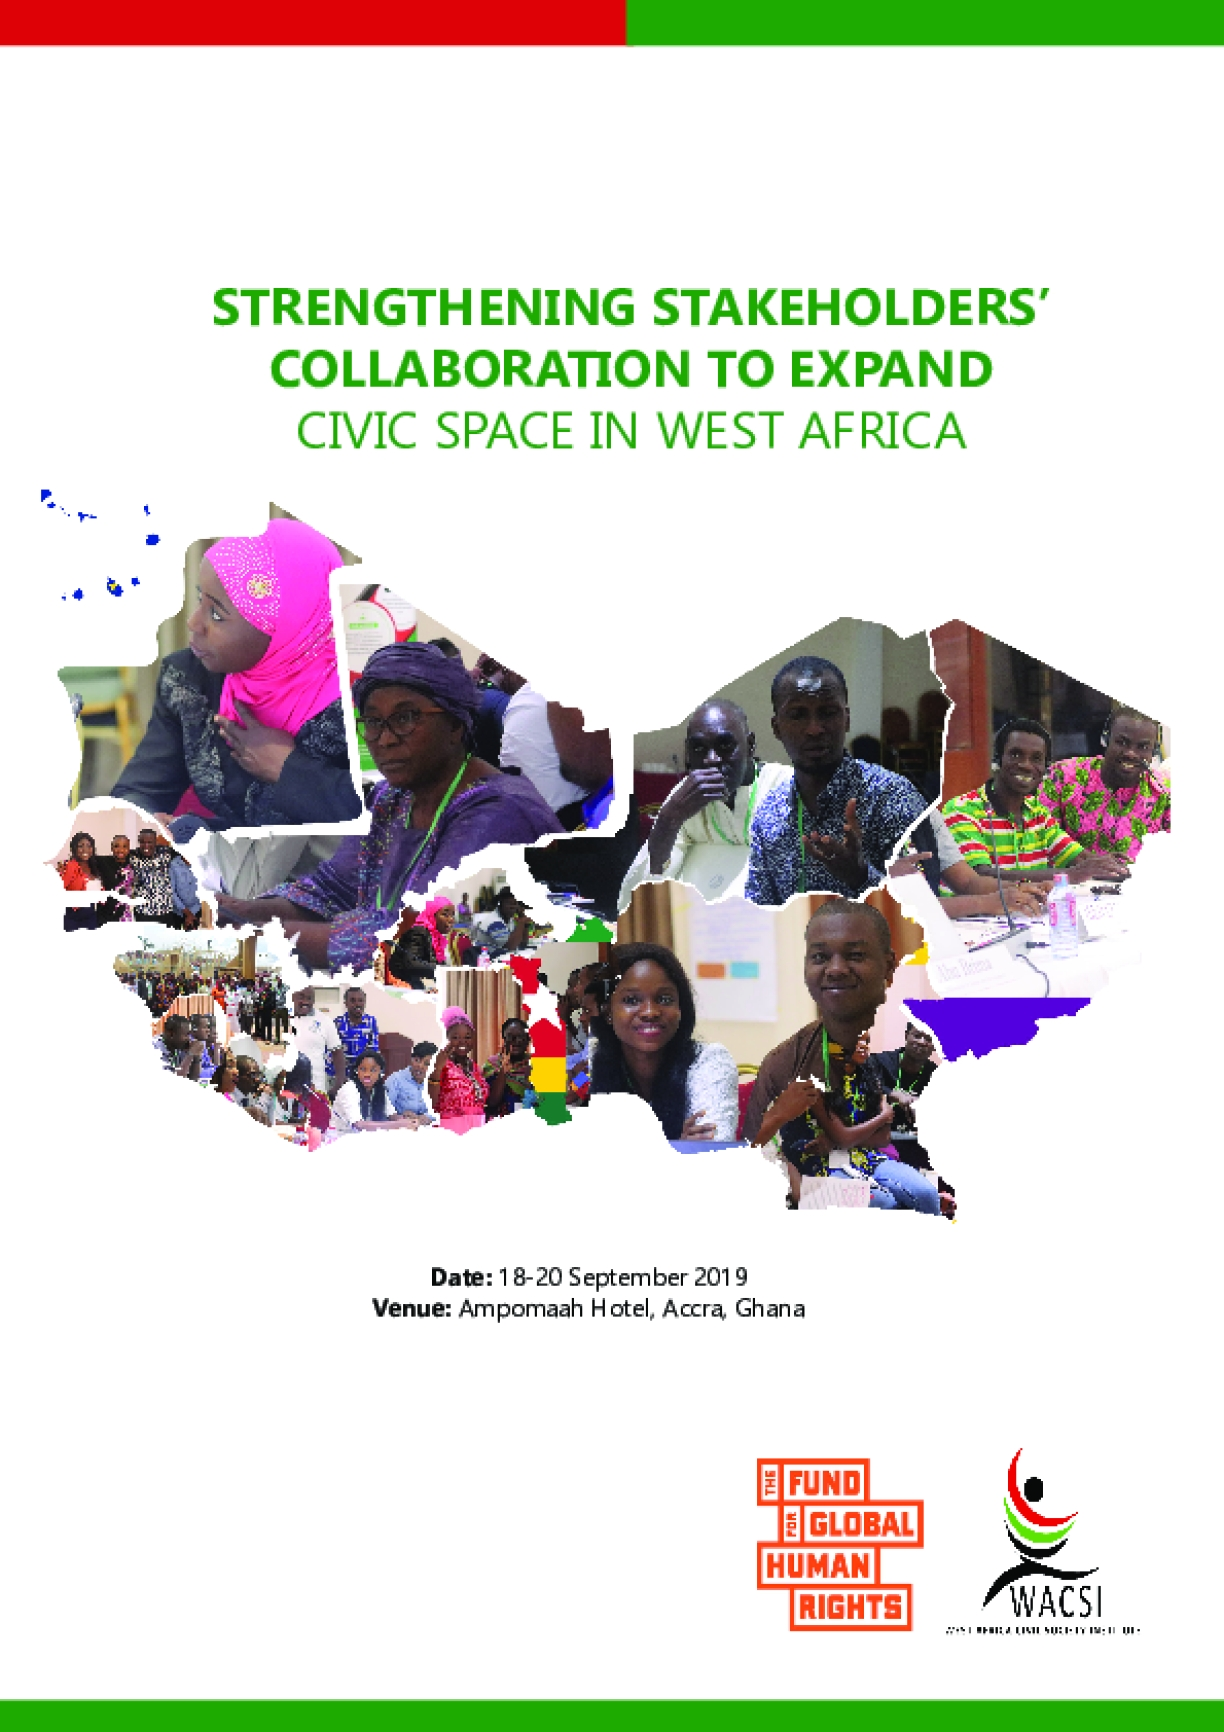 Strengthening Stakeholders' Collaboration to Expand Civic Space in West Africa